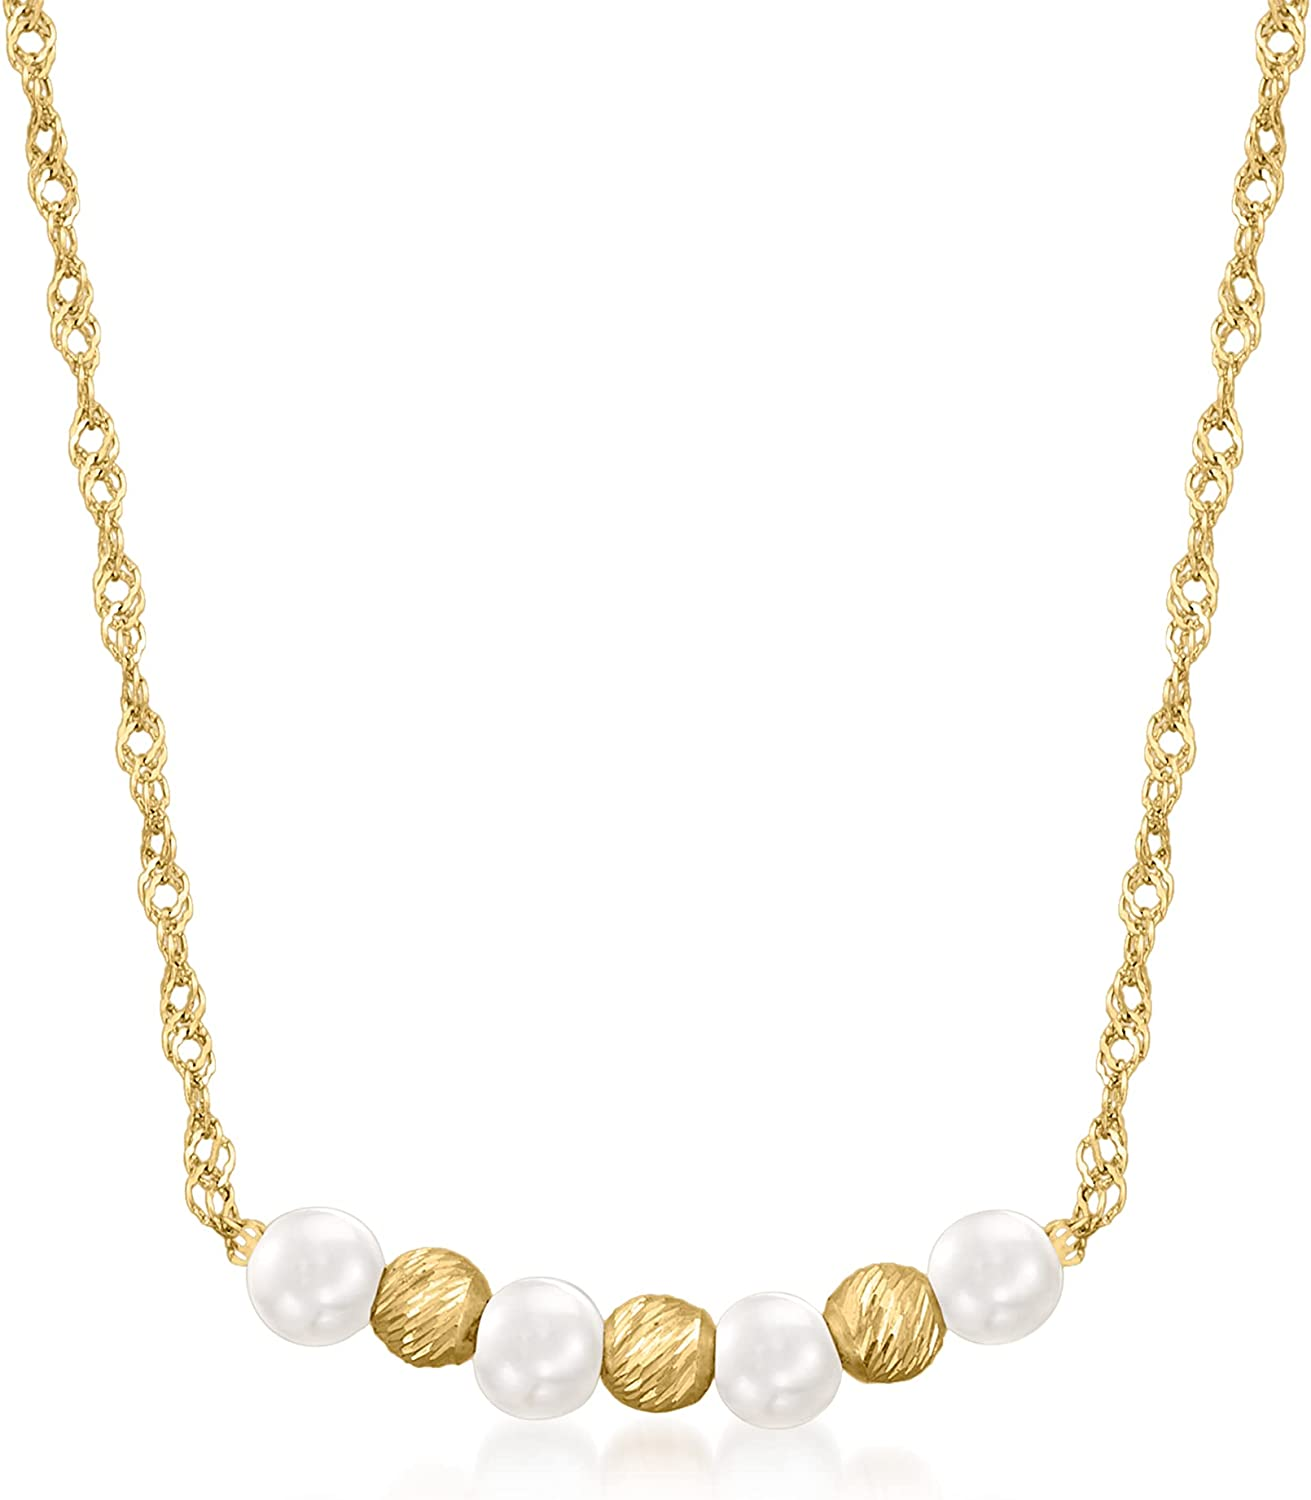 Ross-Simons 2.5-3mm Cultured Pearl and 14kt Yellow Gold Bead Necklace